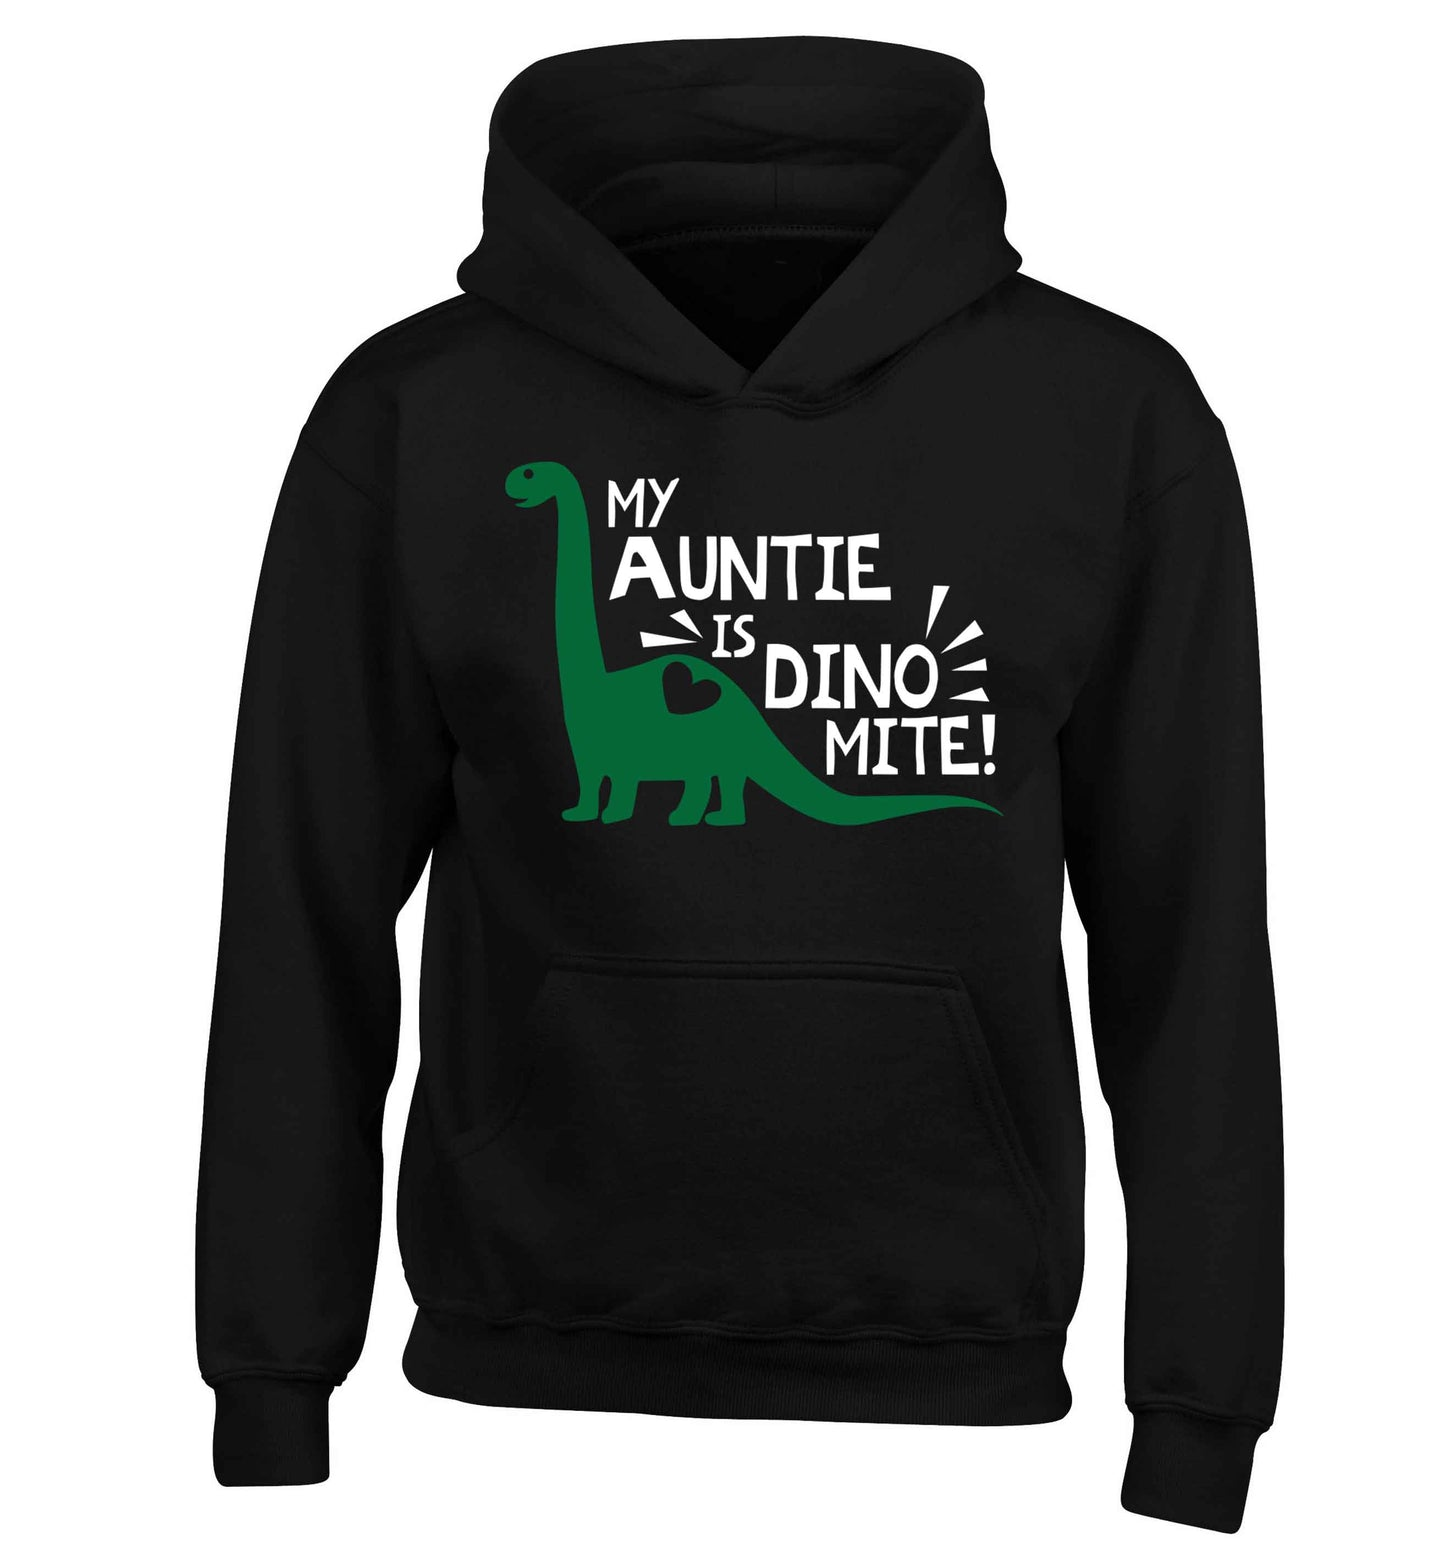 My auntie is dinomite! children's black hoodie 12-13 Years